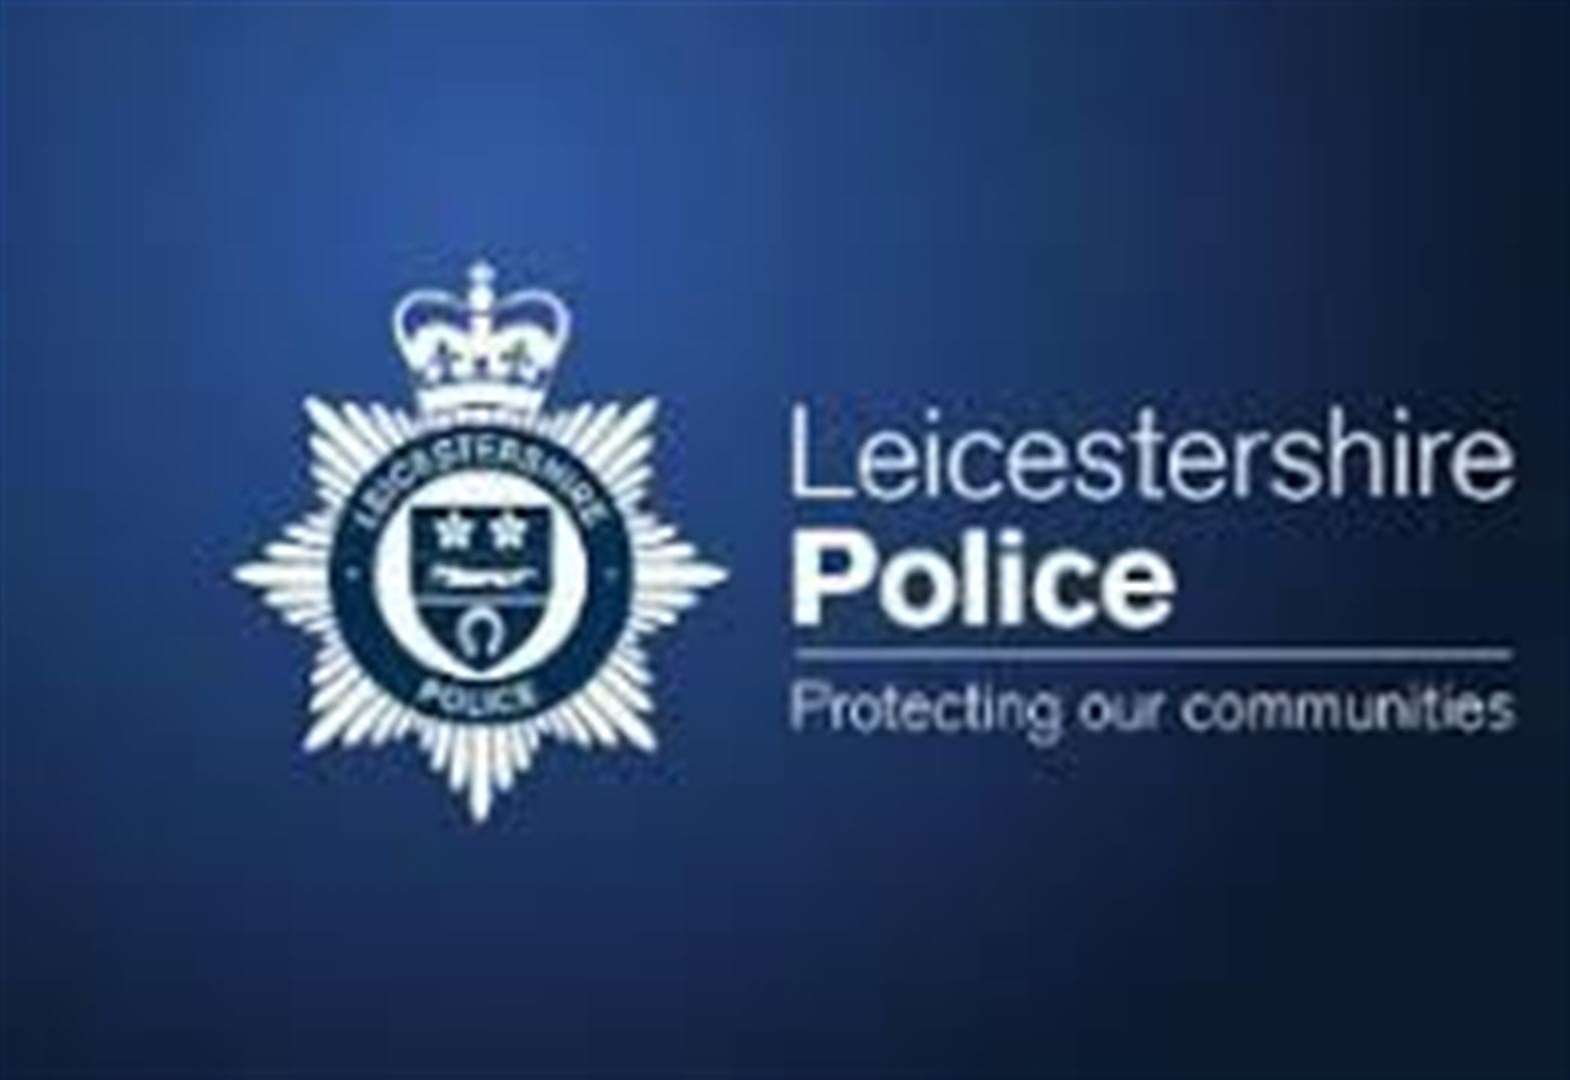 Police force to consider increasing council tax